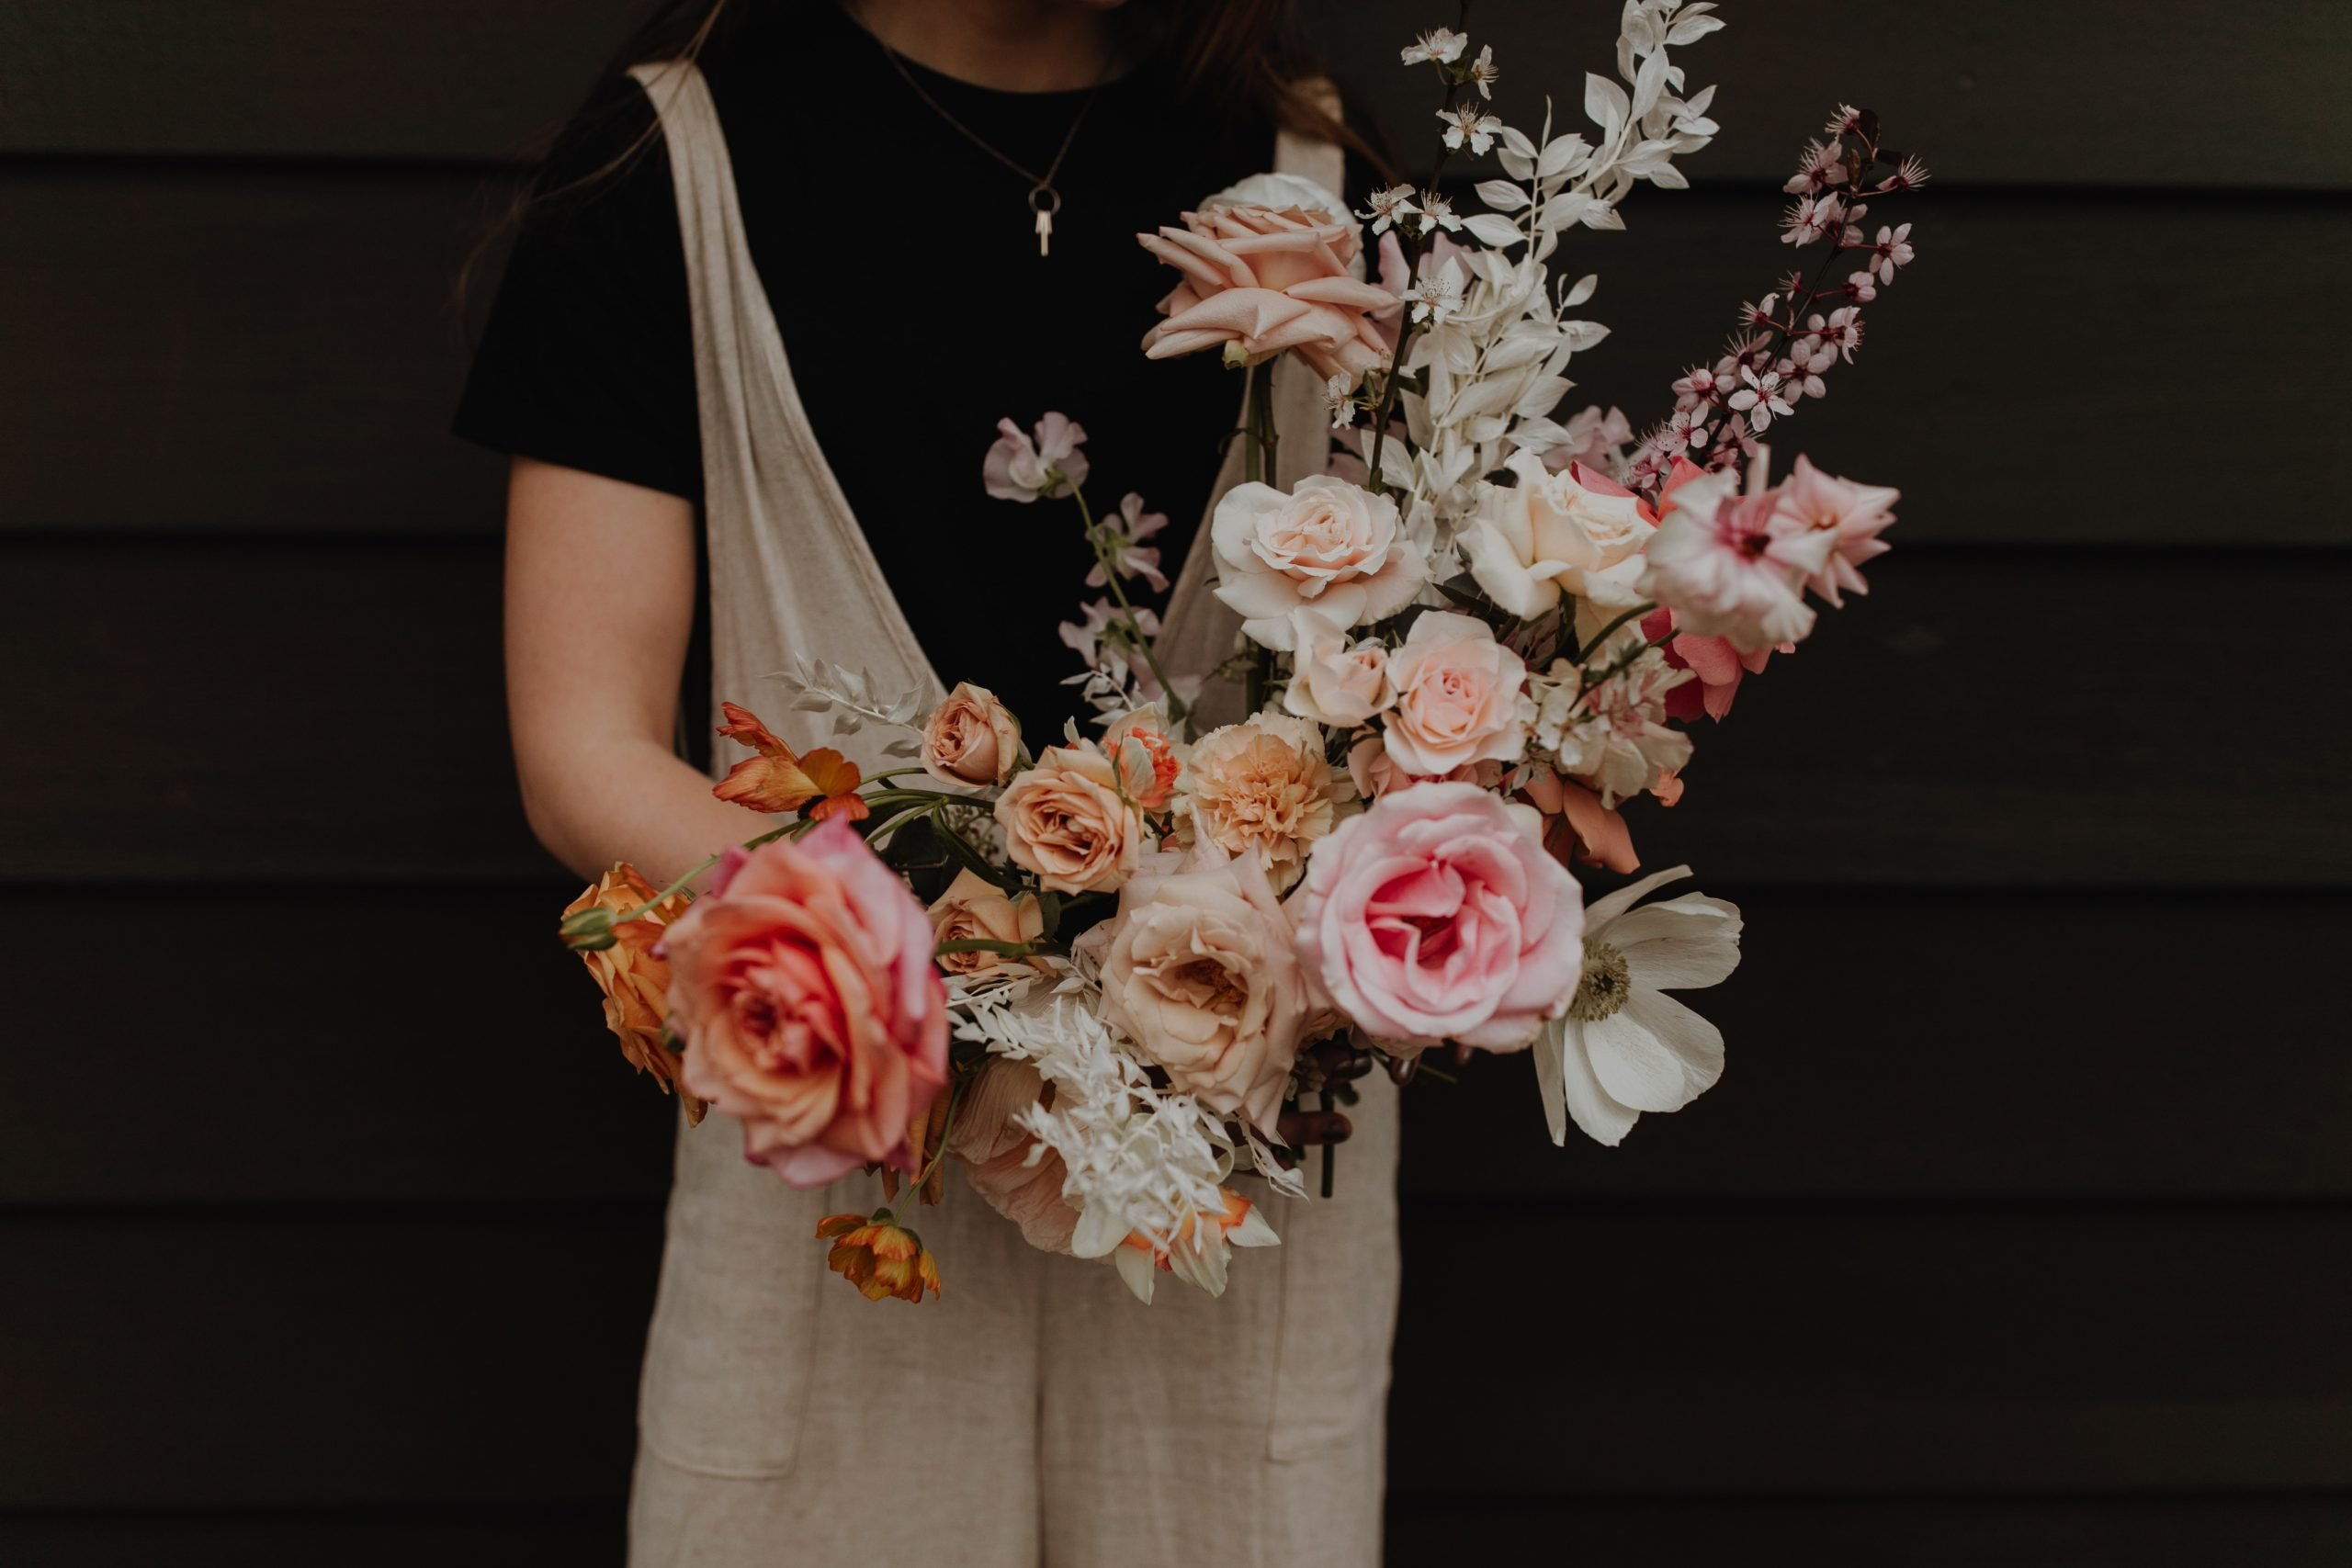 photo of Good Seed florist holding a romantic bouquet with peach and blush tones.